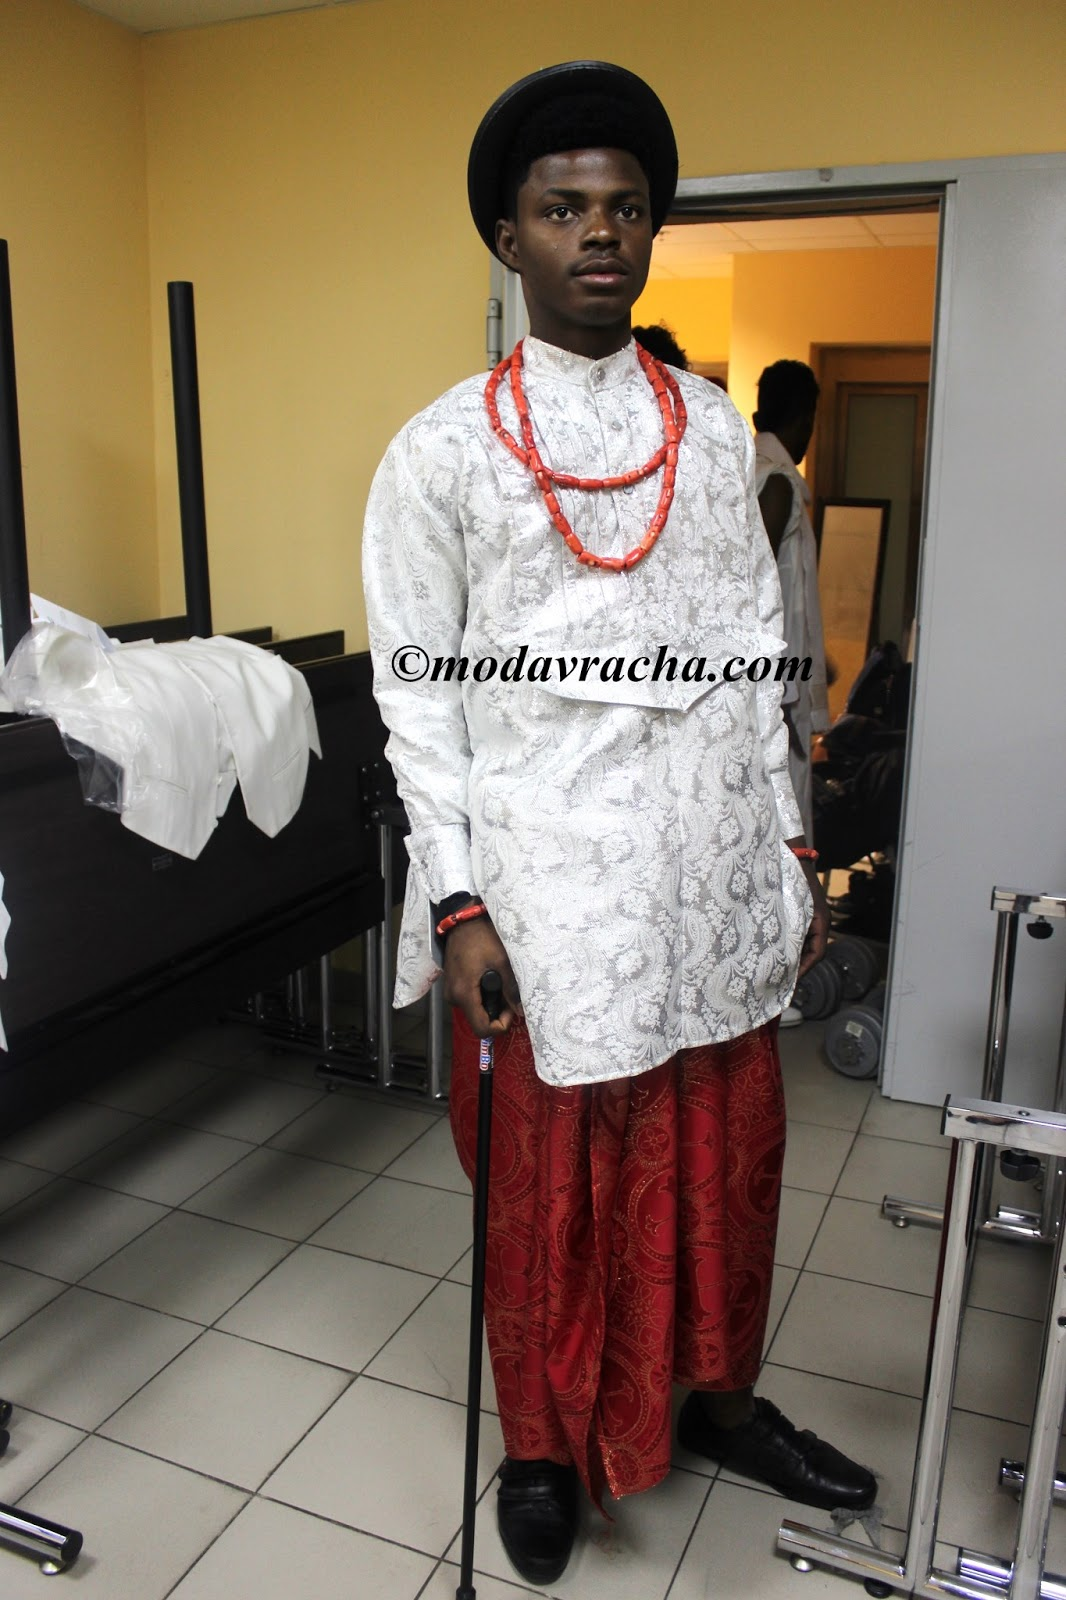 niger-delta traditional attire